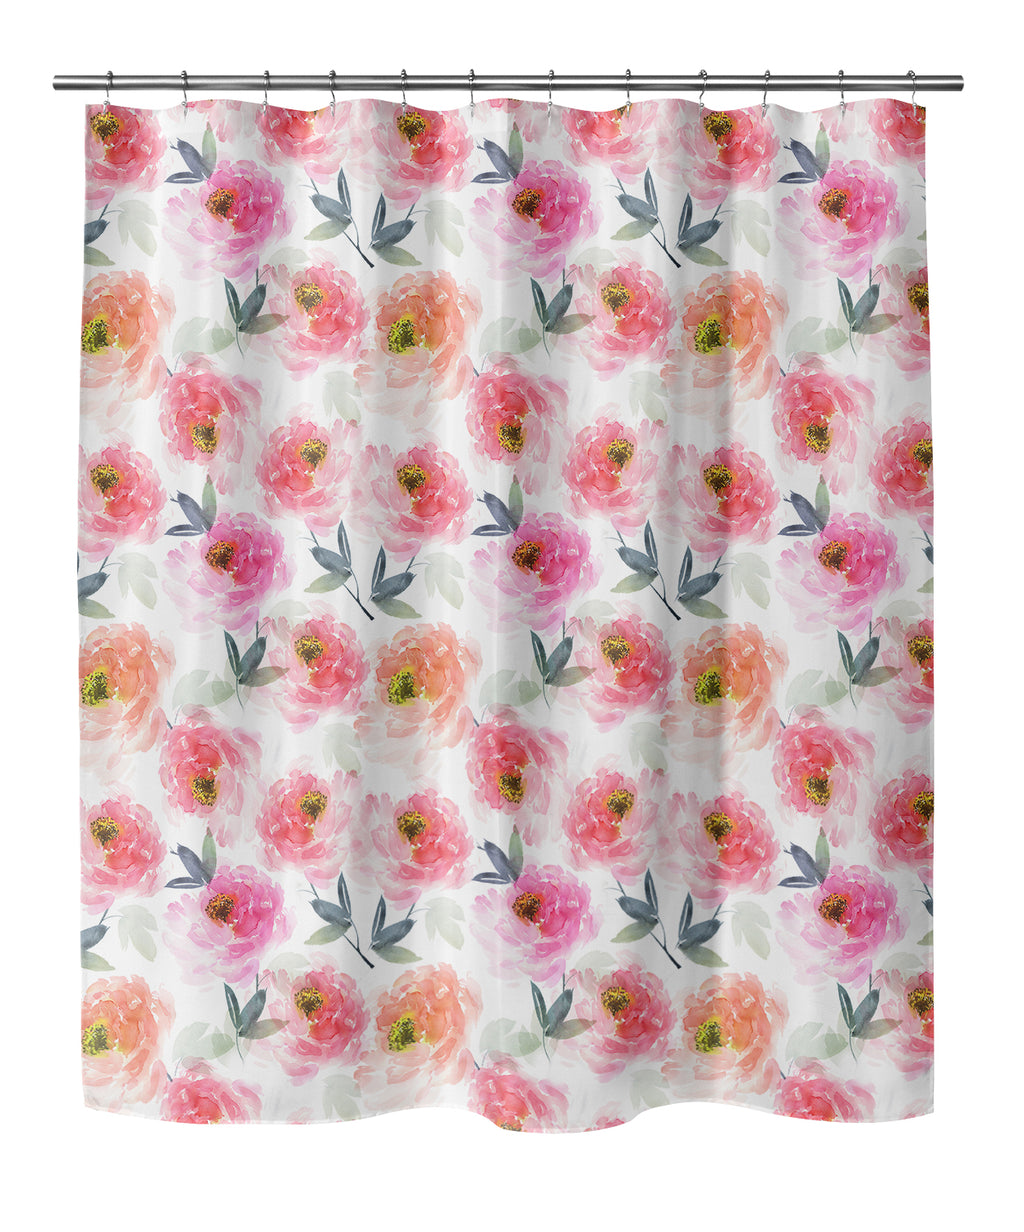 FLORAL LOVE PINK Shower Curtain By Jackii Greener